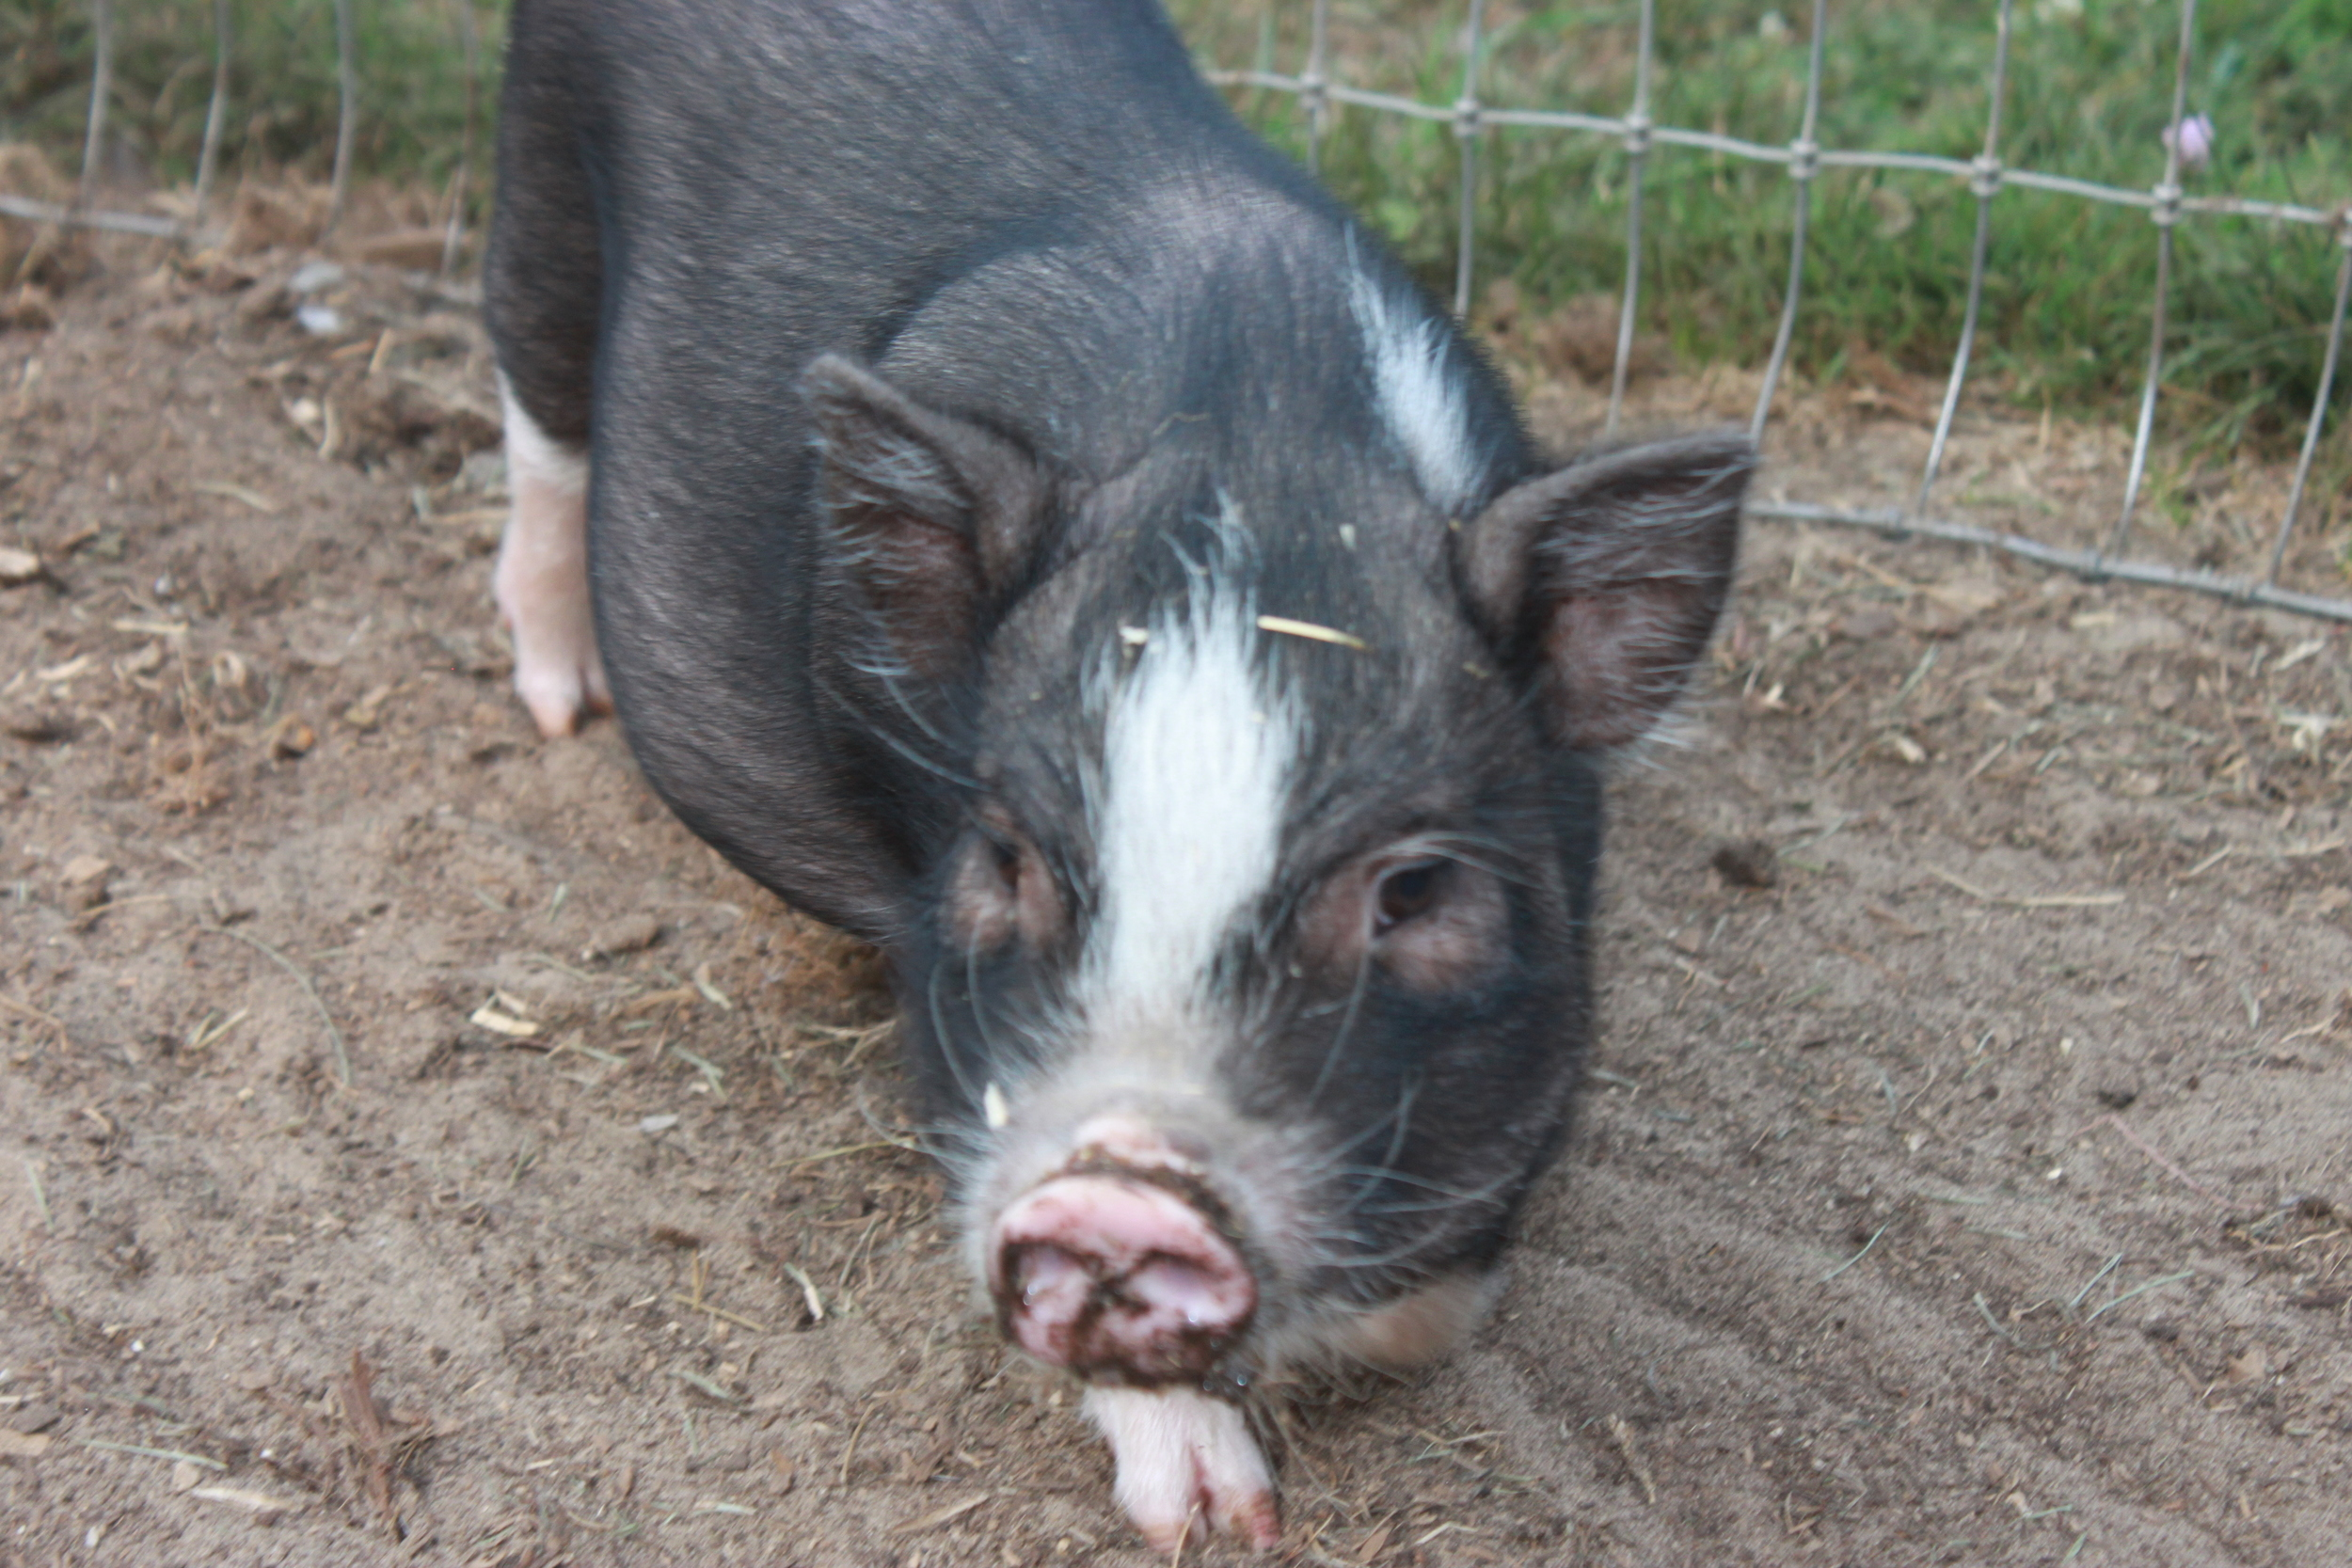 Oliver, the youngest pig